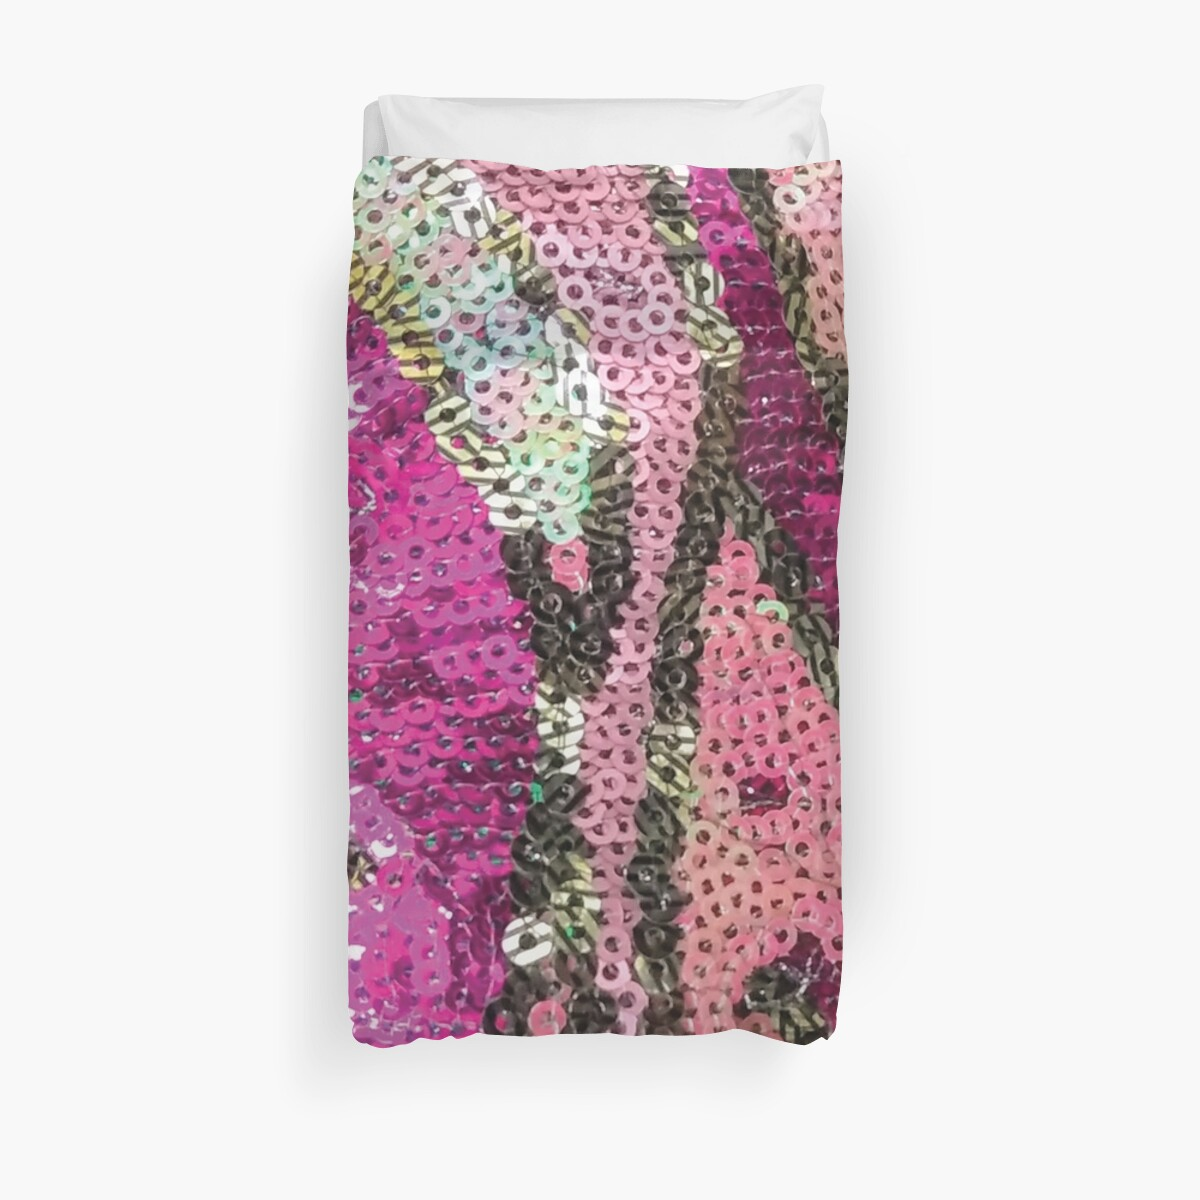 Photo of Pink Sequined Fabric by CrazyCraftLady